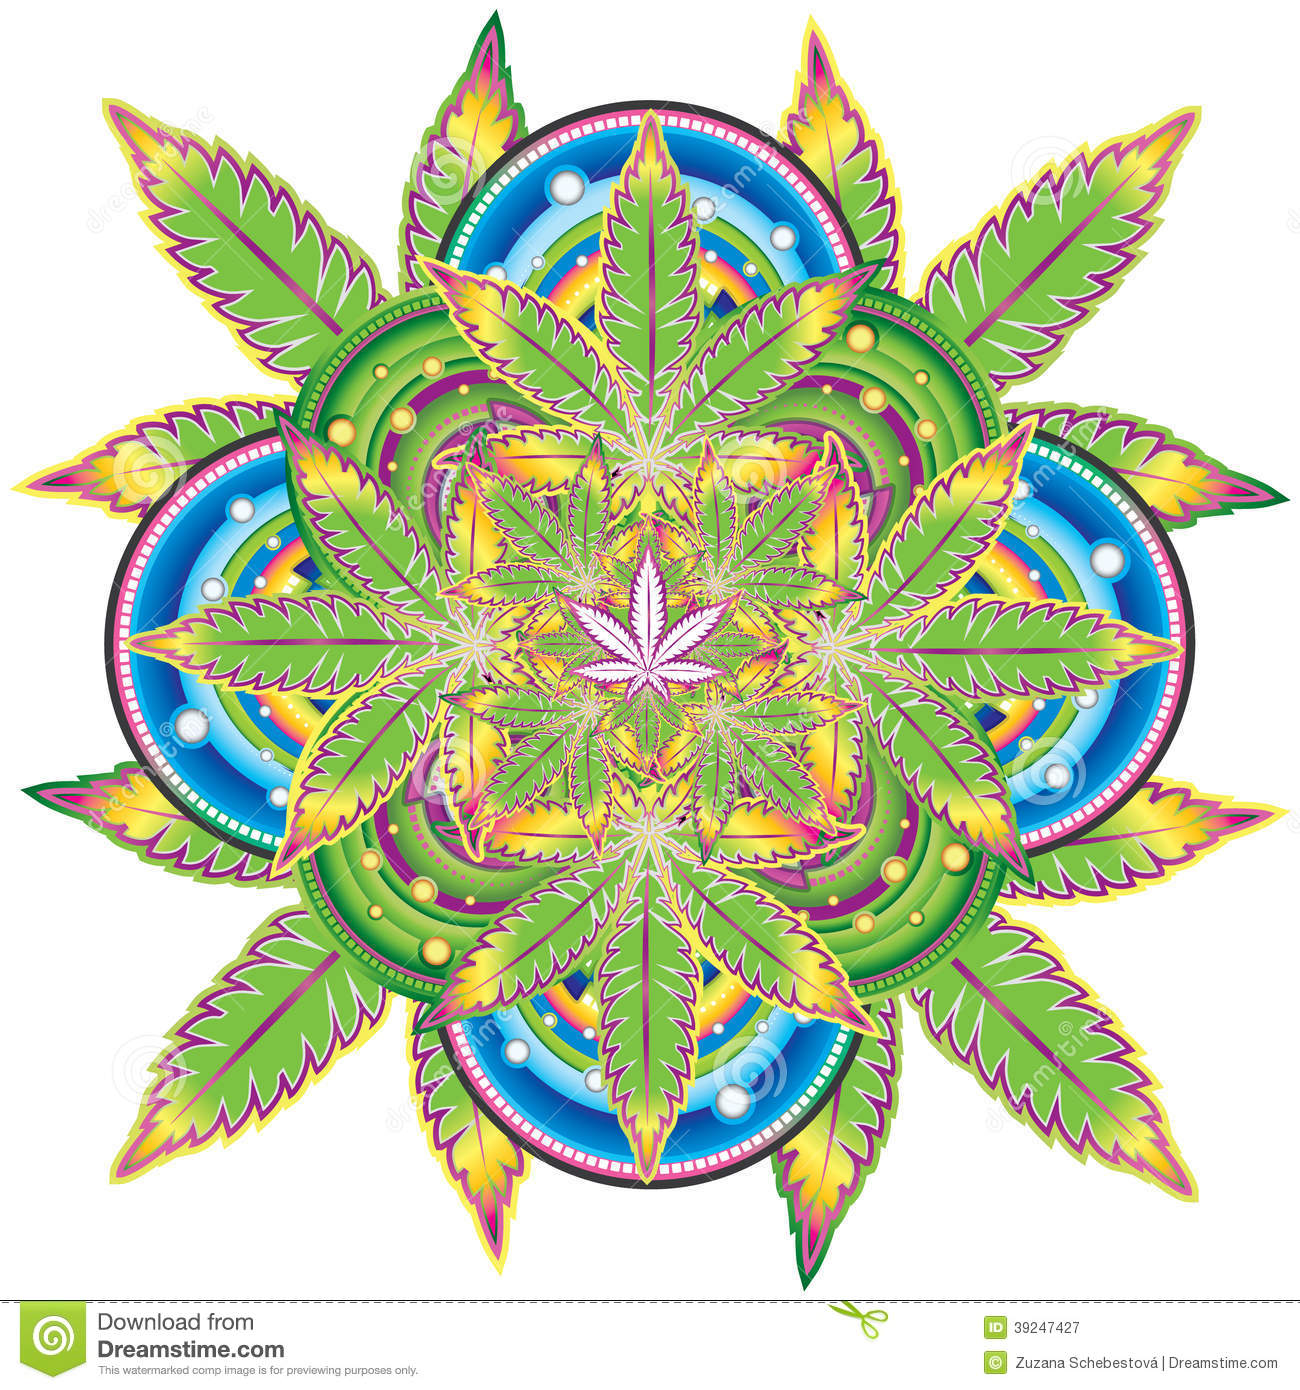 Growing marijuana leaf kaleidoscope symbol